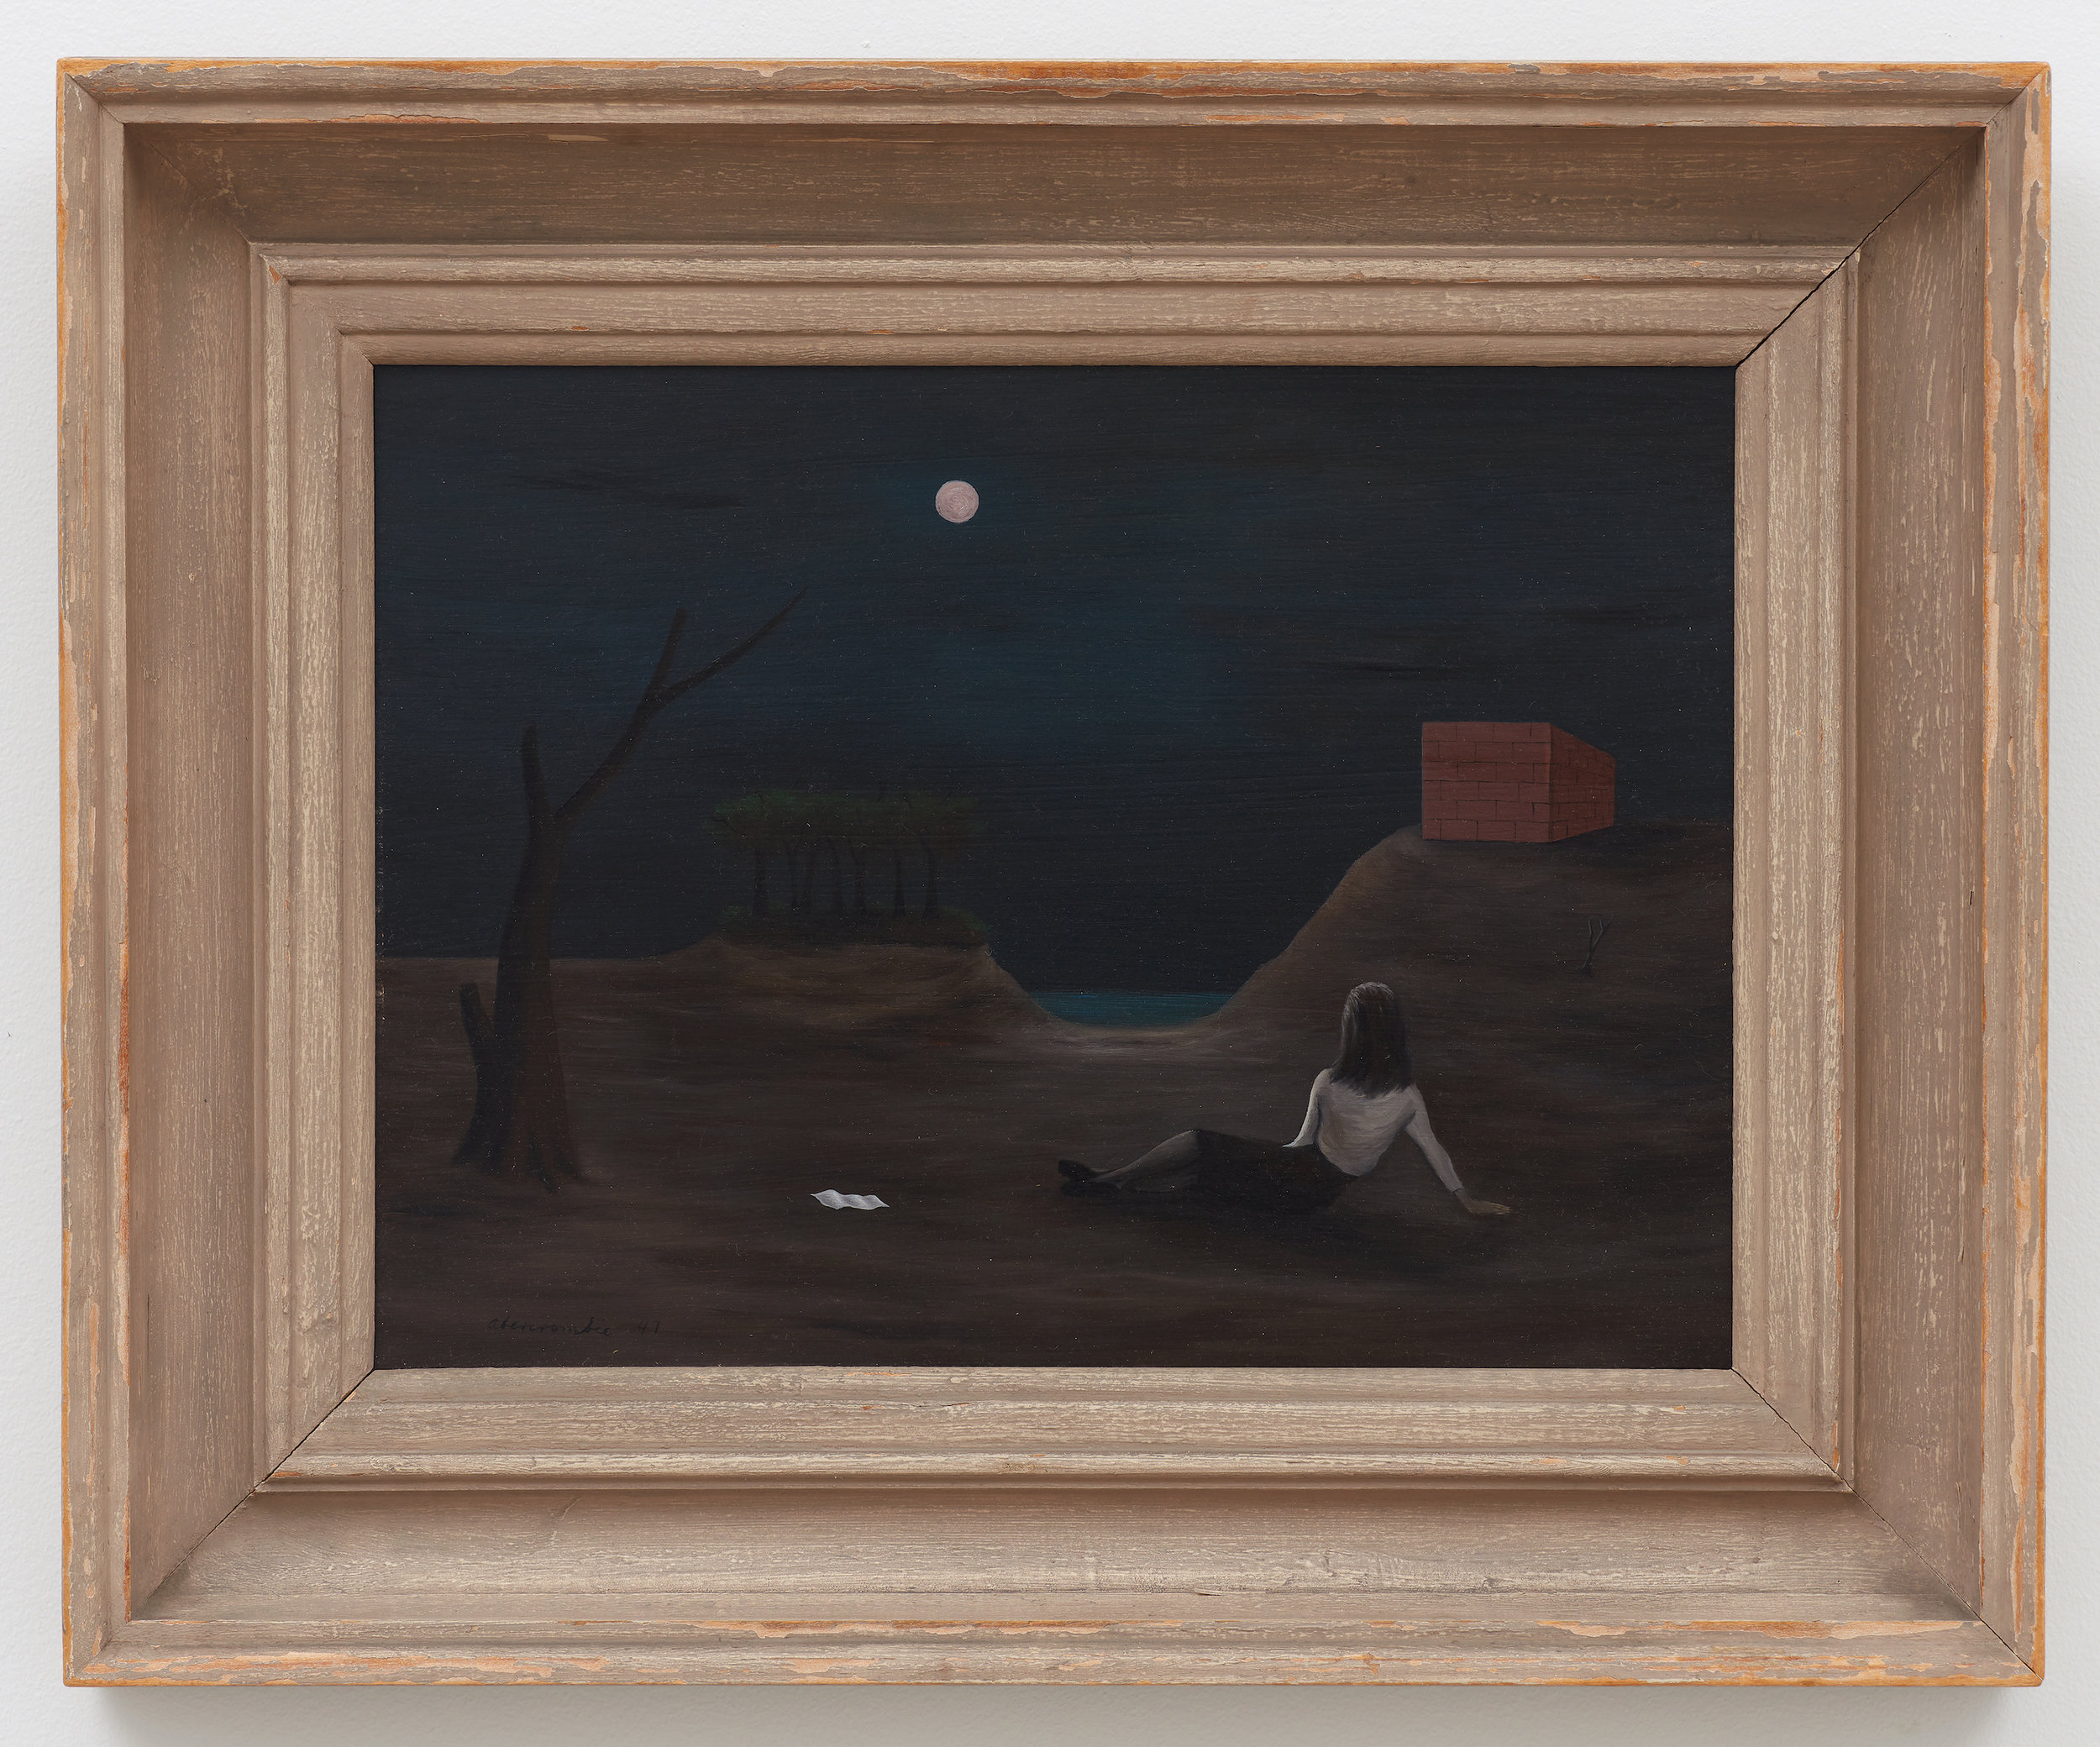 Reverie , 1947, Oil on masonite, 12 × 16 inches (unframed); 18 1/2 × 22 inches (framed). Illinois State Museum, Illinois Legacy Collection, museum purchase. Photo: Illinois State Museum.